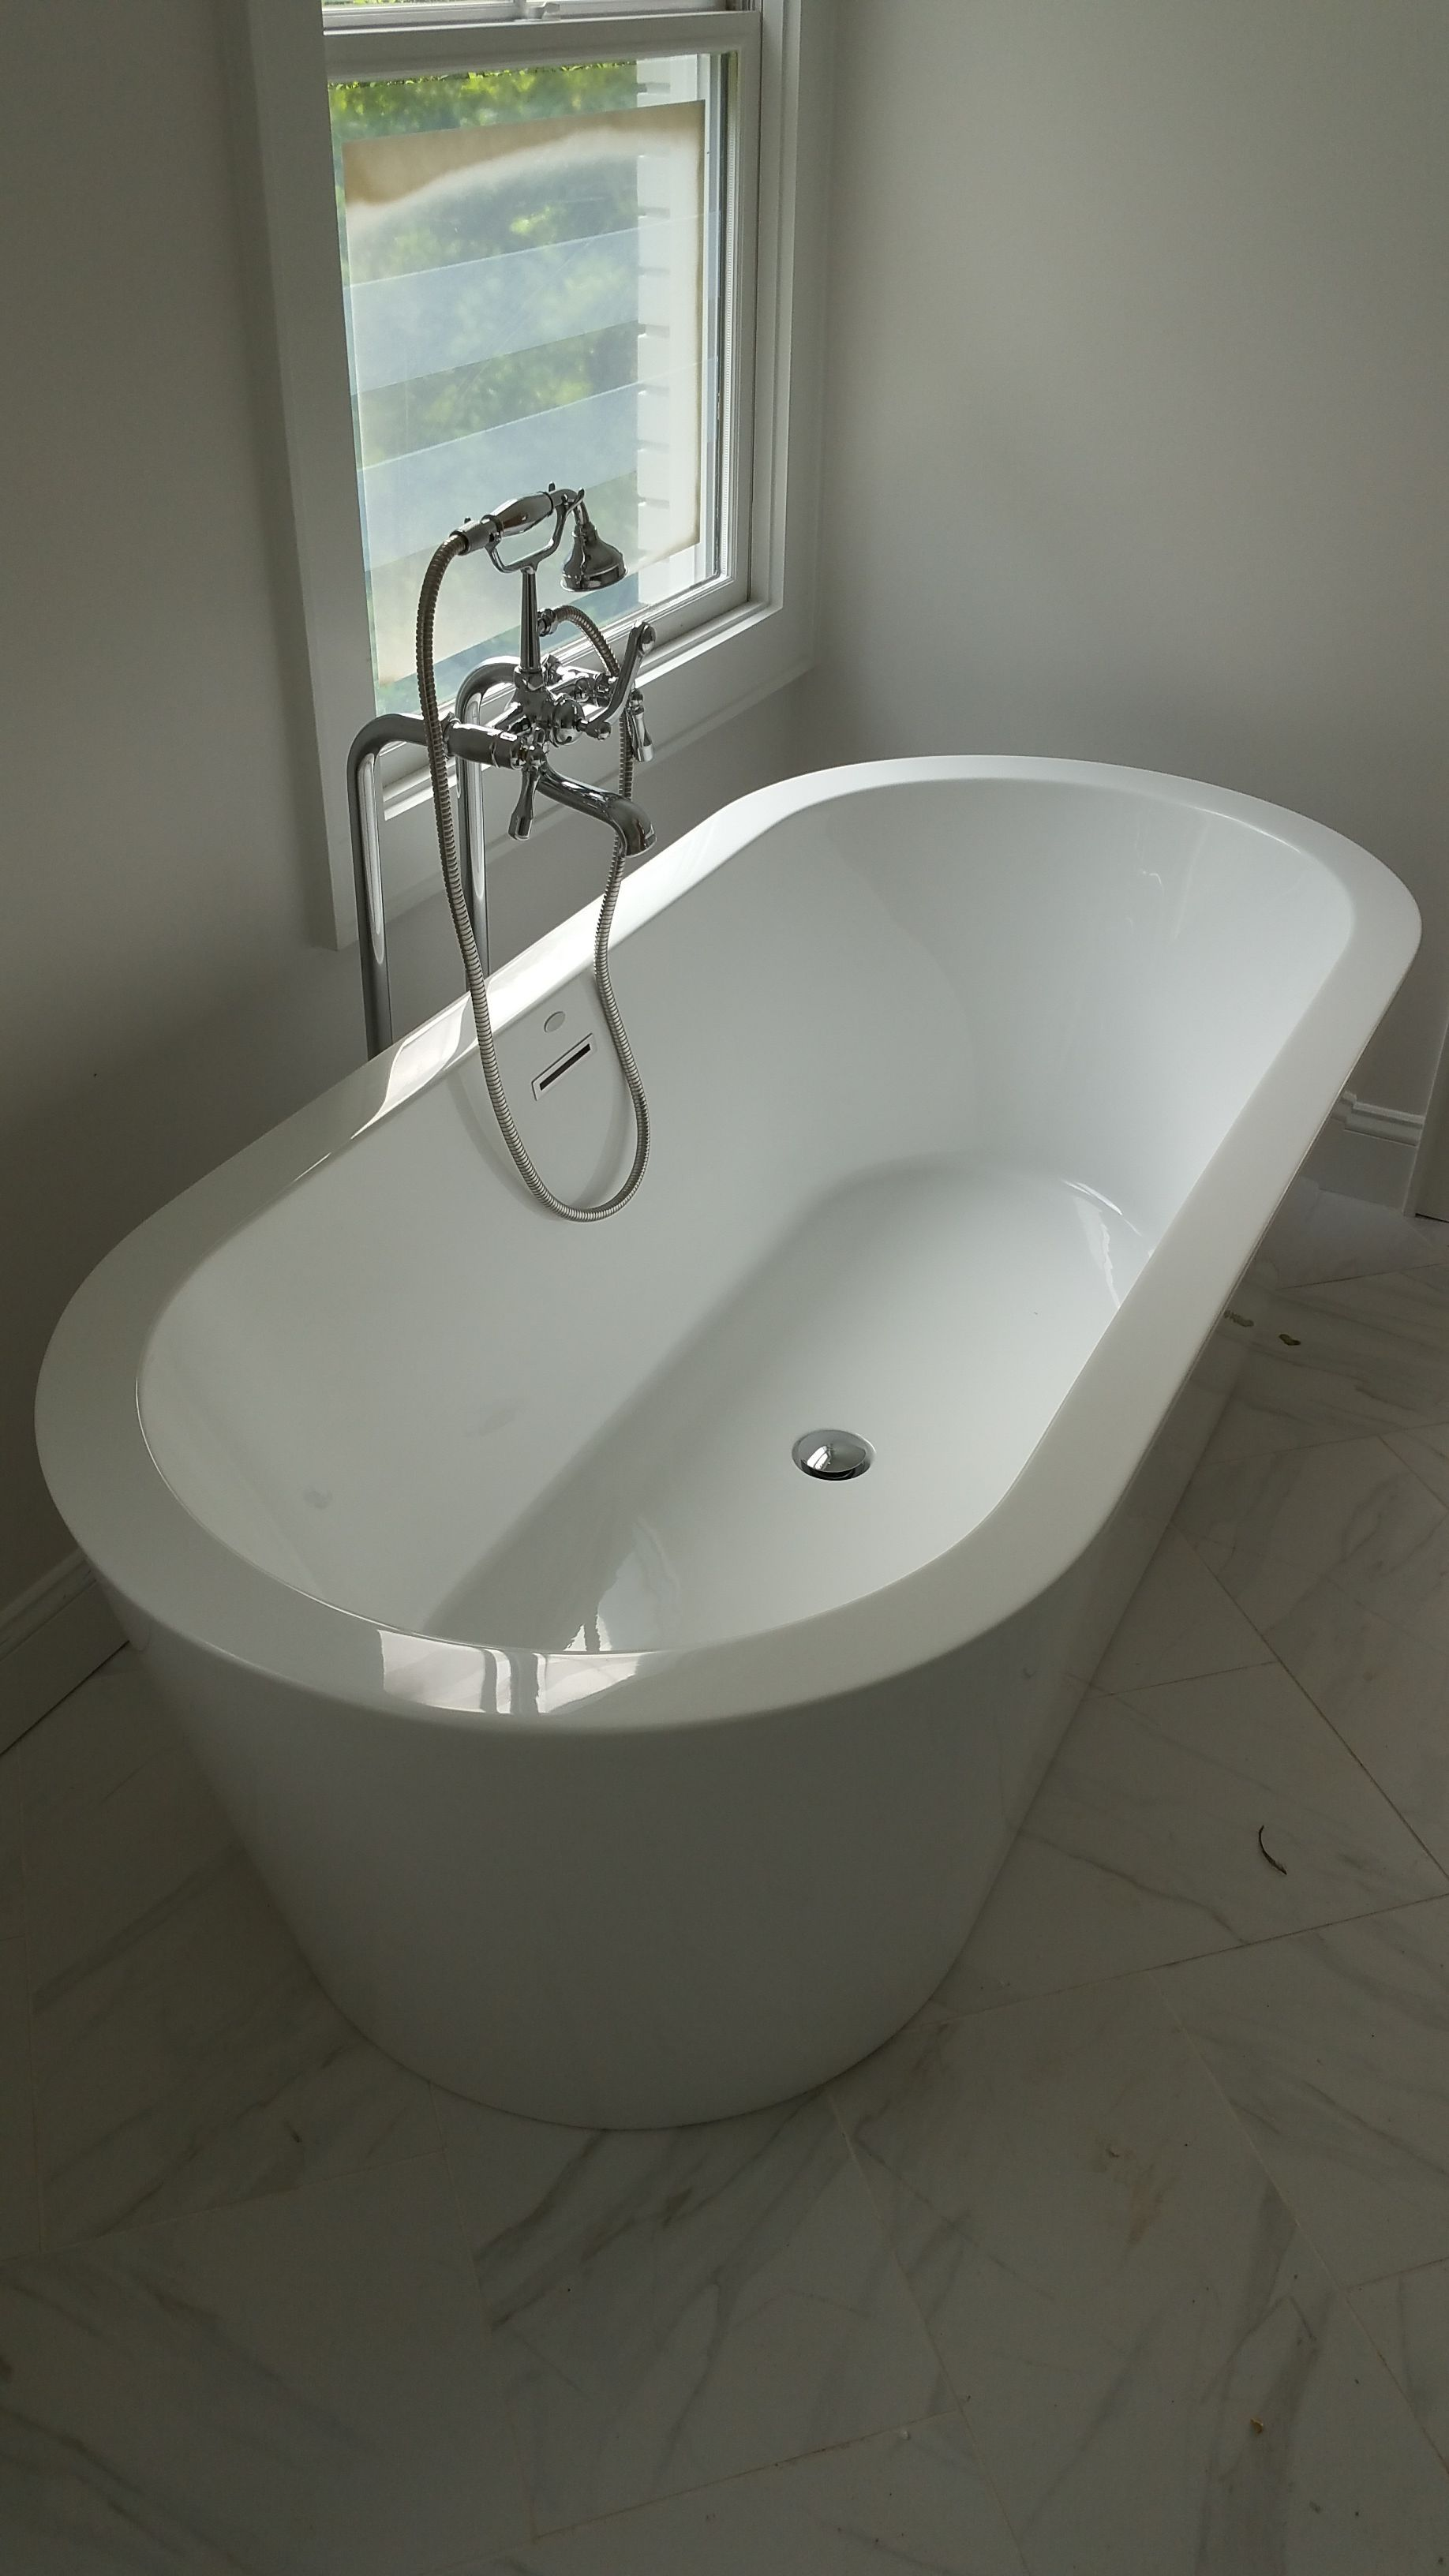 Jacuzzi Tub In The Master Bathroom | Tingen Remodeling, Raleigh, NC #Jacuzzi